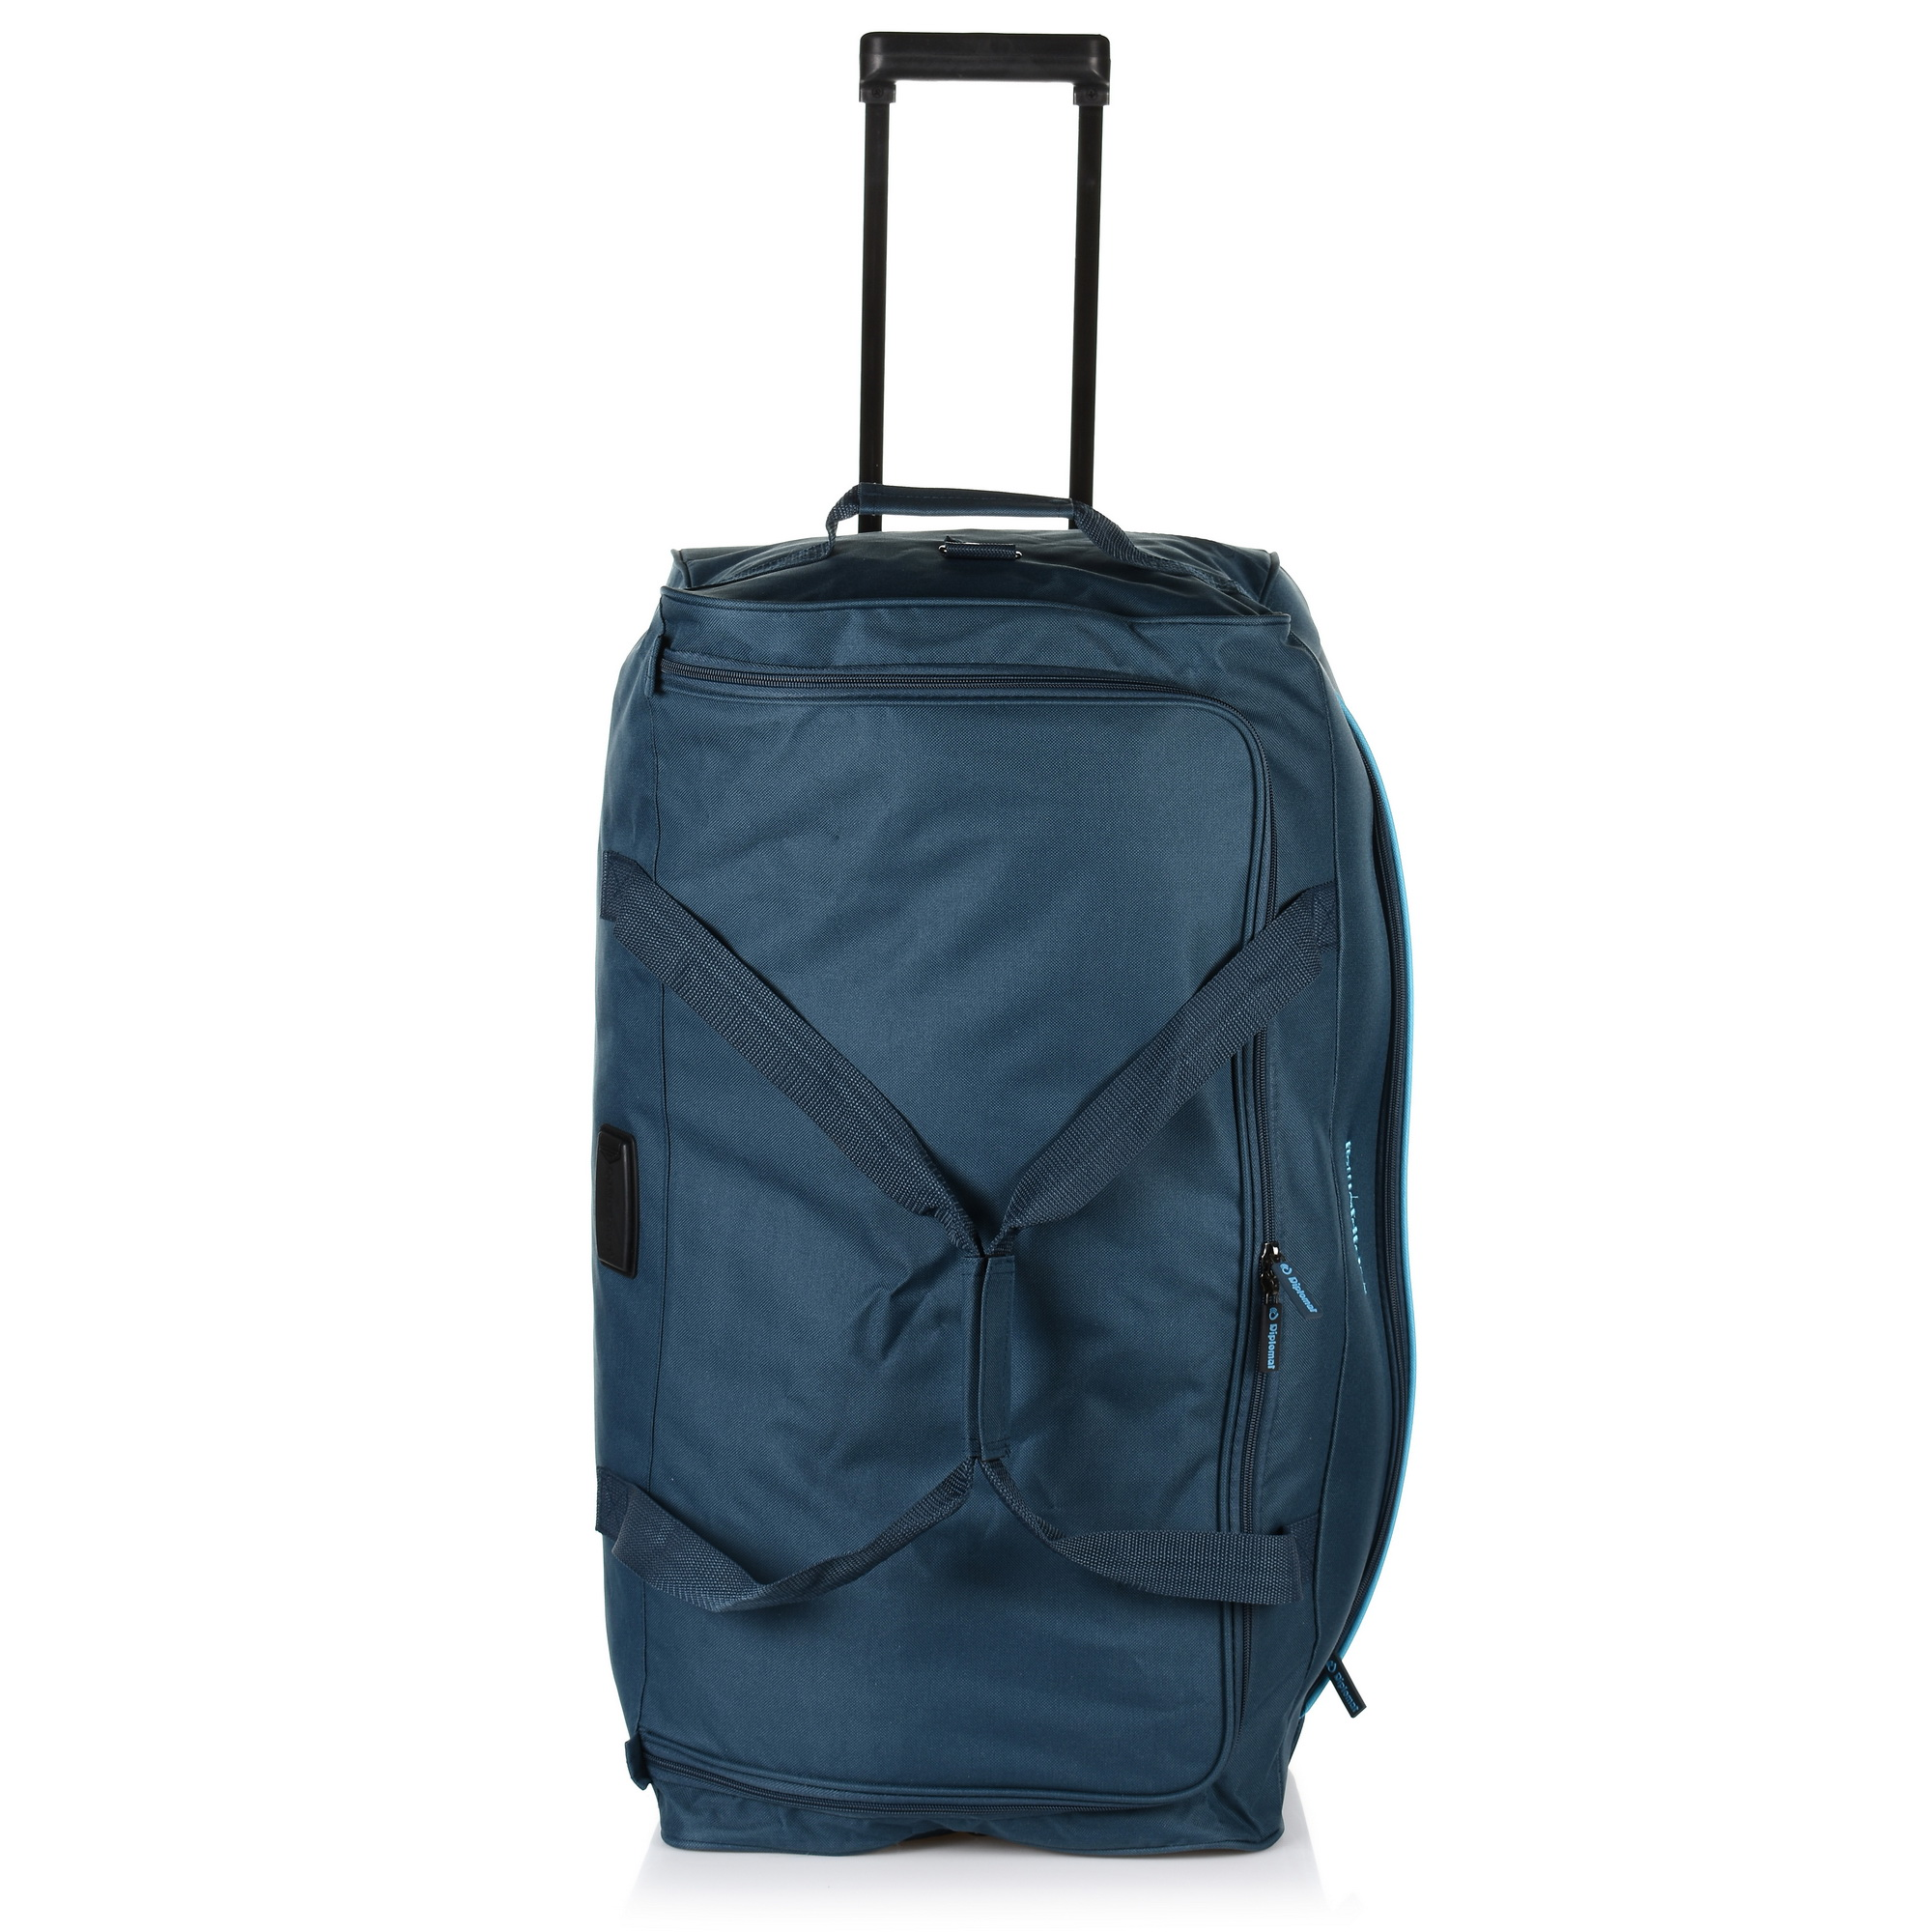 Σακ-Βουαγιάζ Diplomat Travel Bag ZC3001-70W